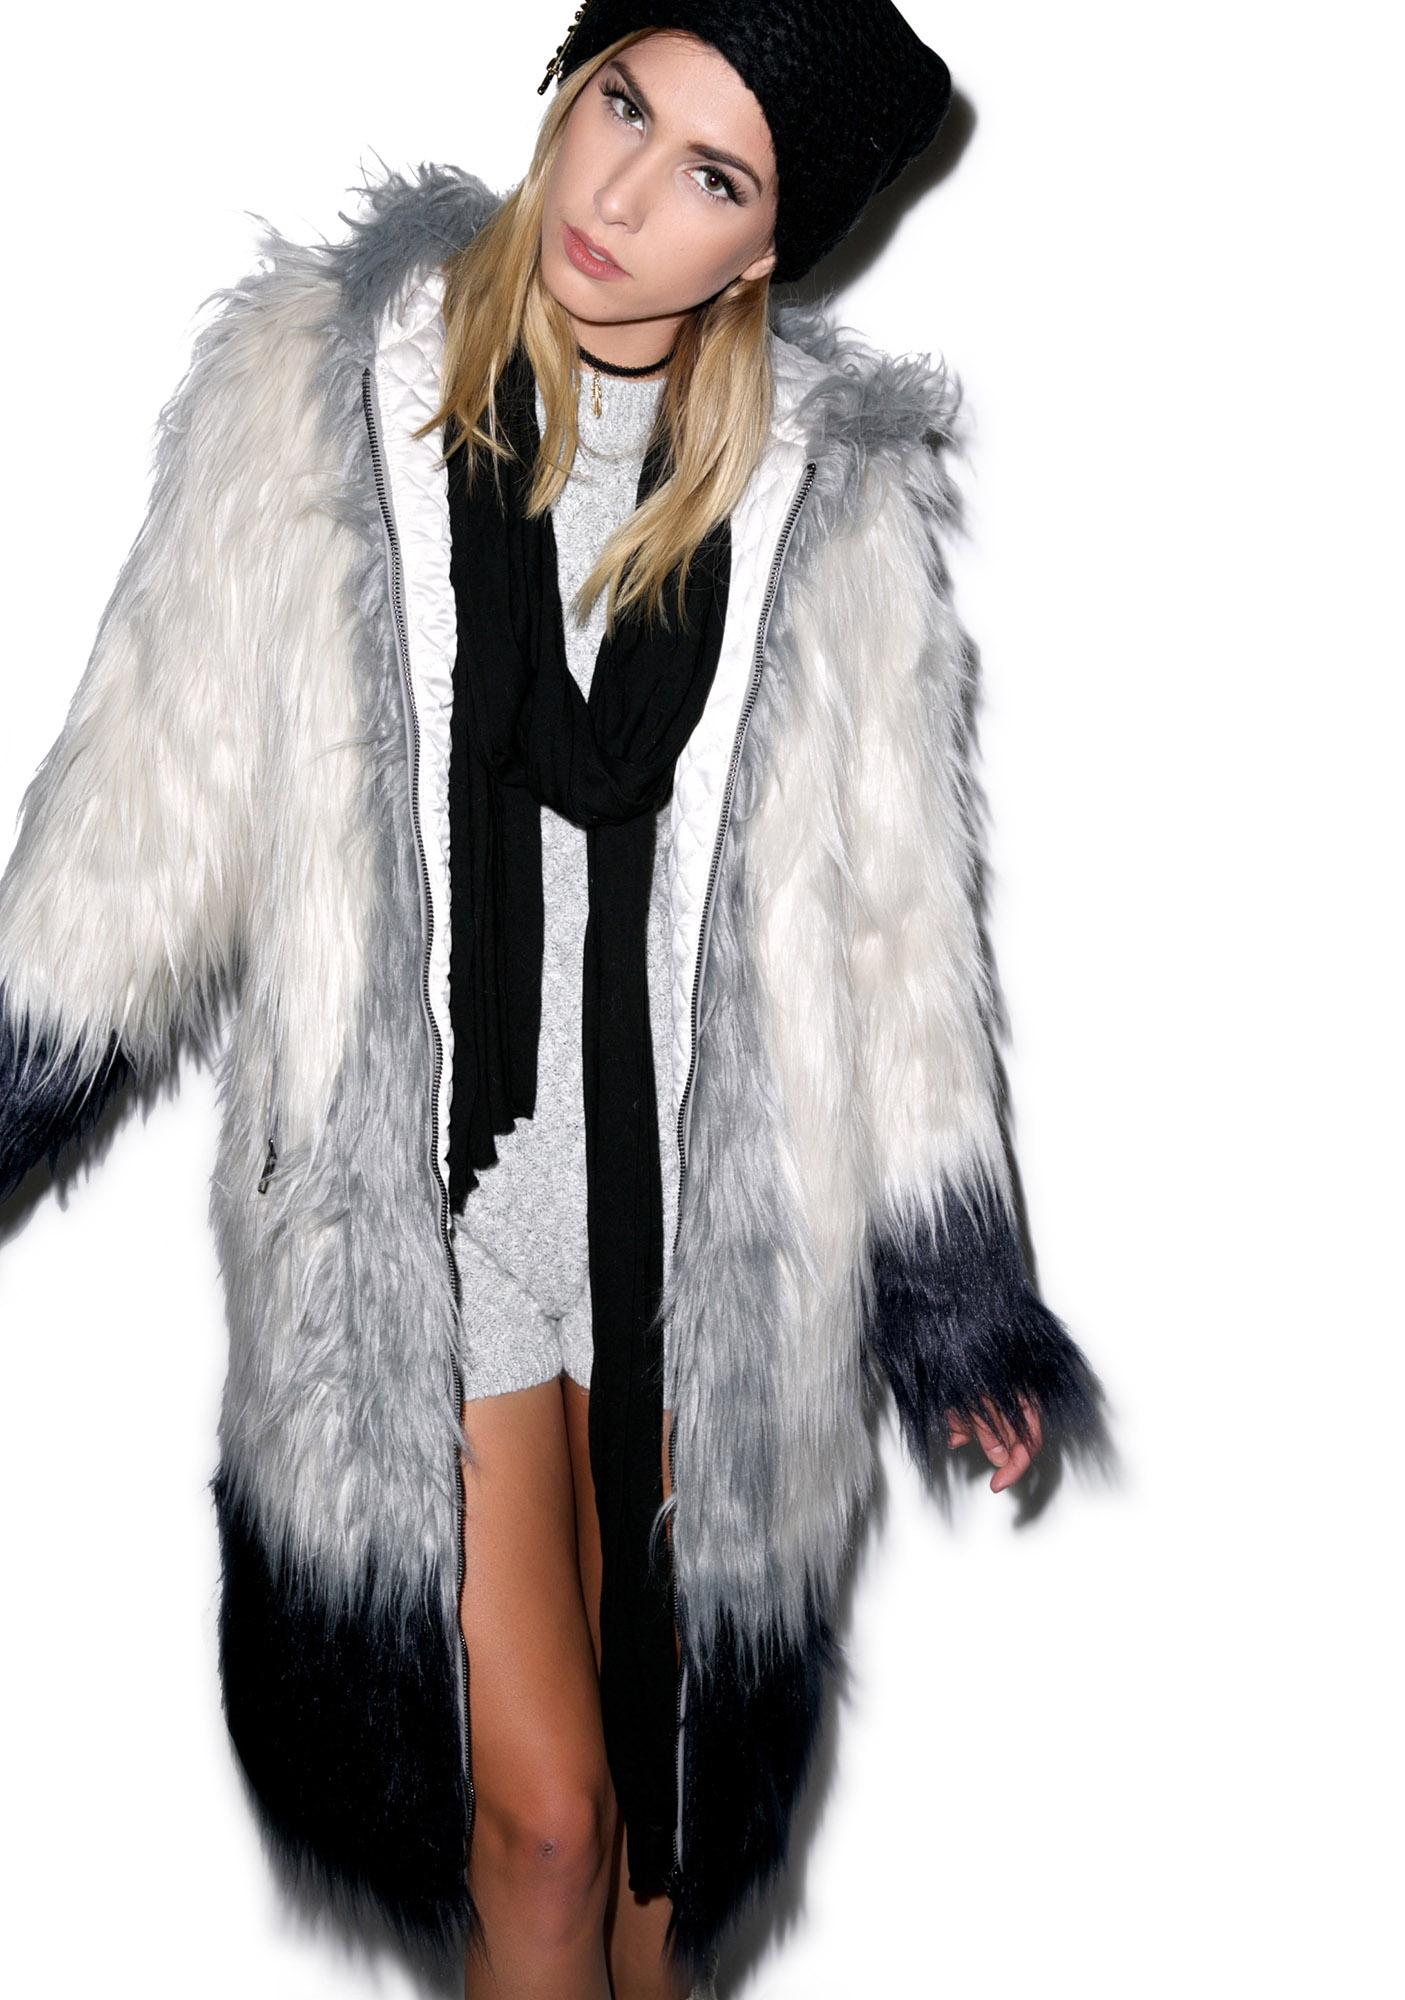 Shop for fur hooded coat online at Target. Free shipping on purchases over $35 and save 5% every day with your Target REDcard.